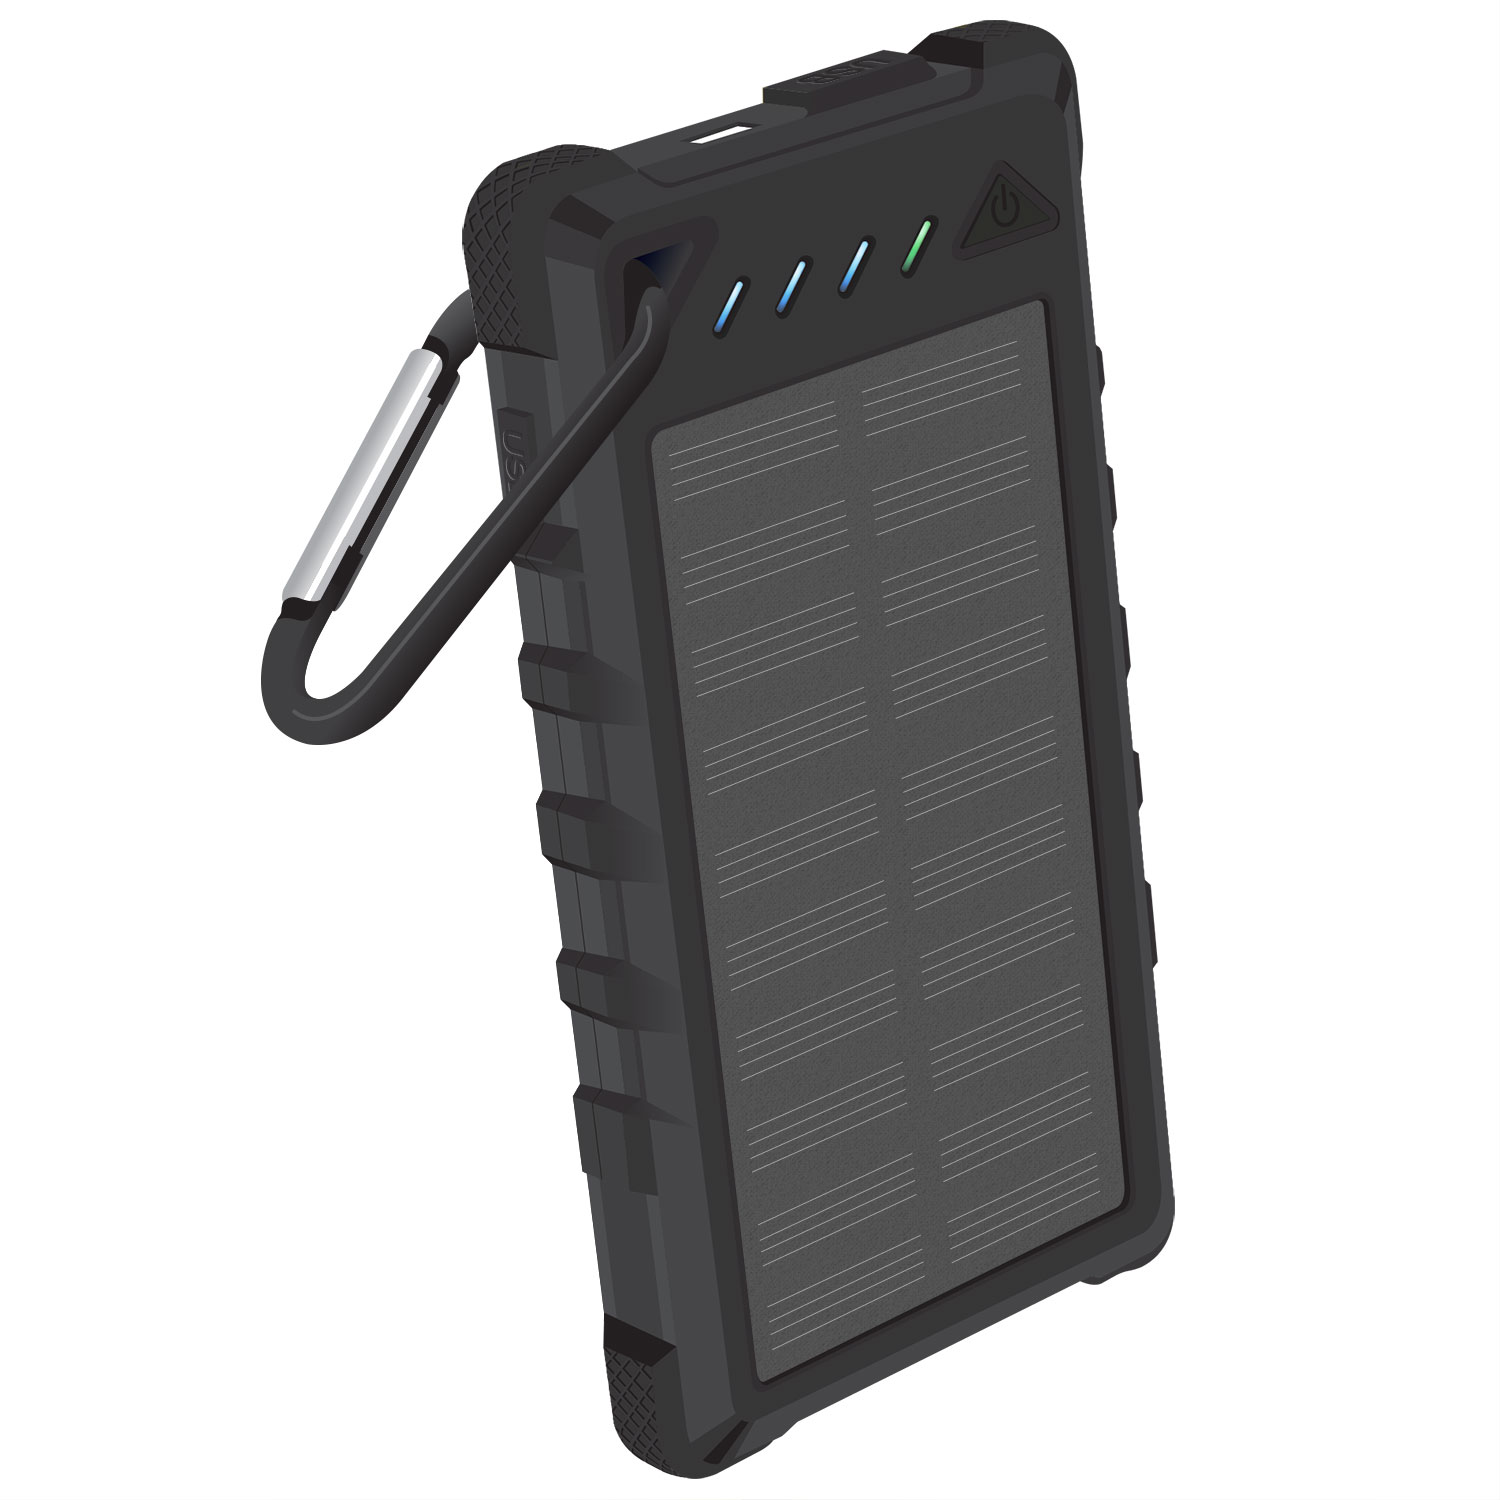 LG K7 Solar Powered Portable PowerBank Black